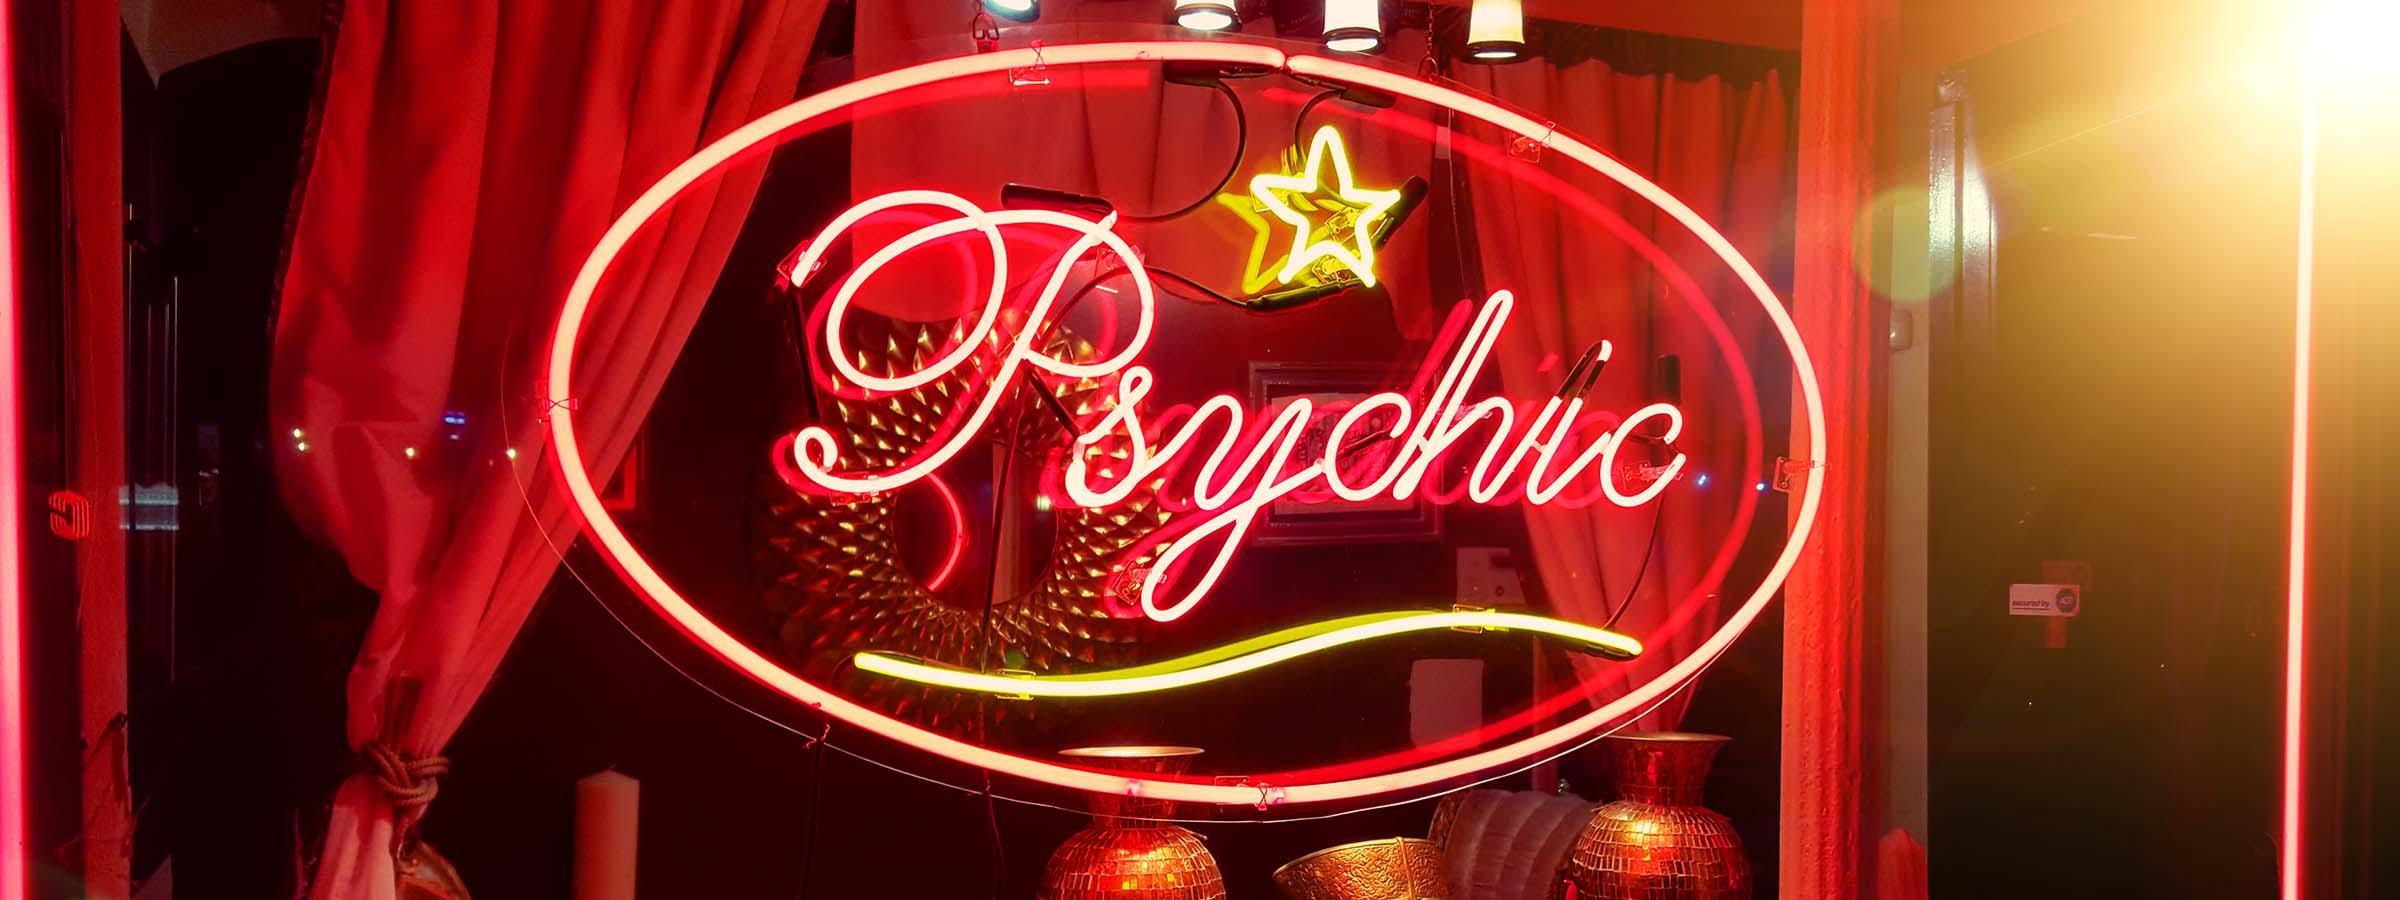 """Neon sign that says """"psychic""""."""